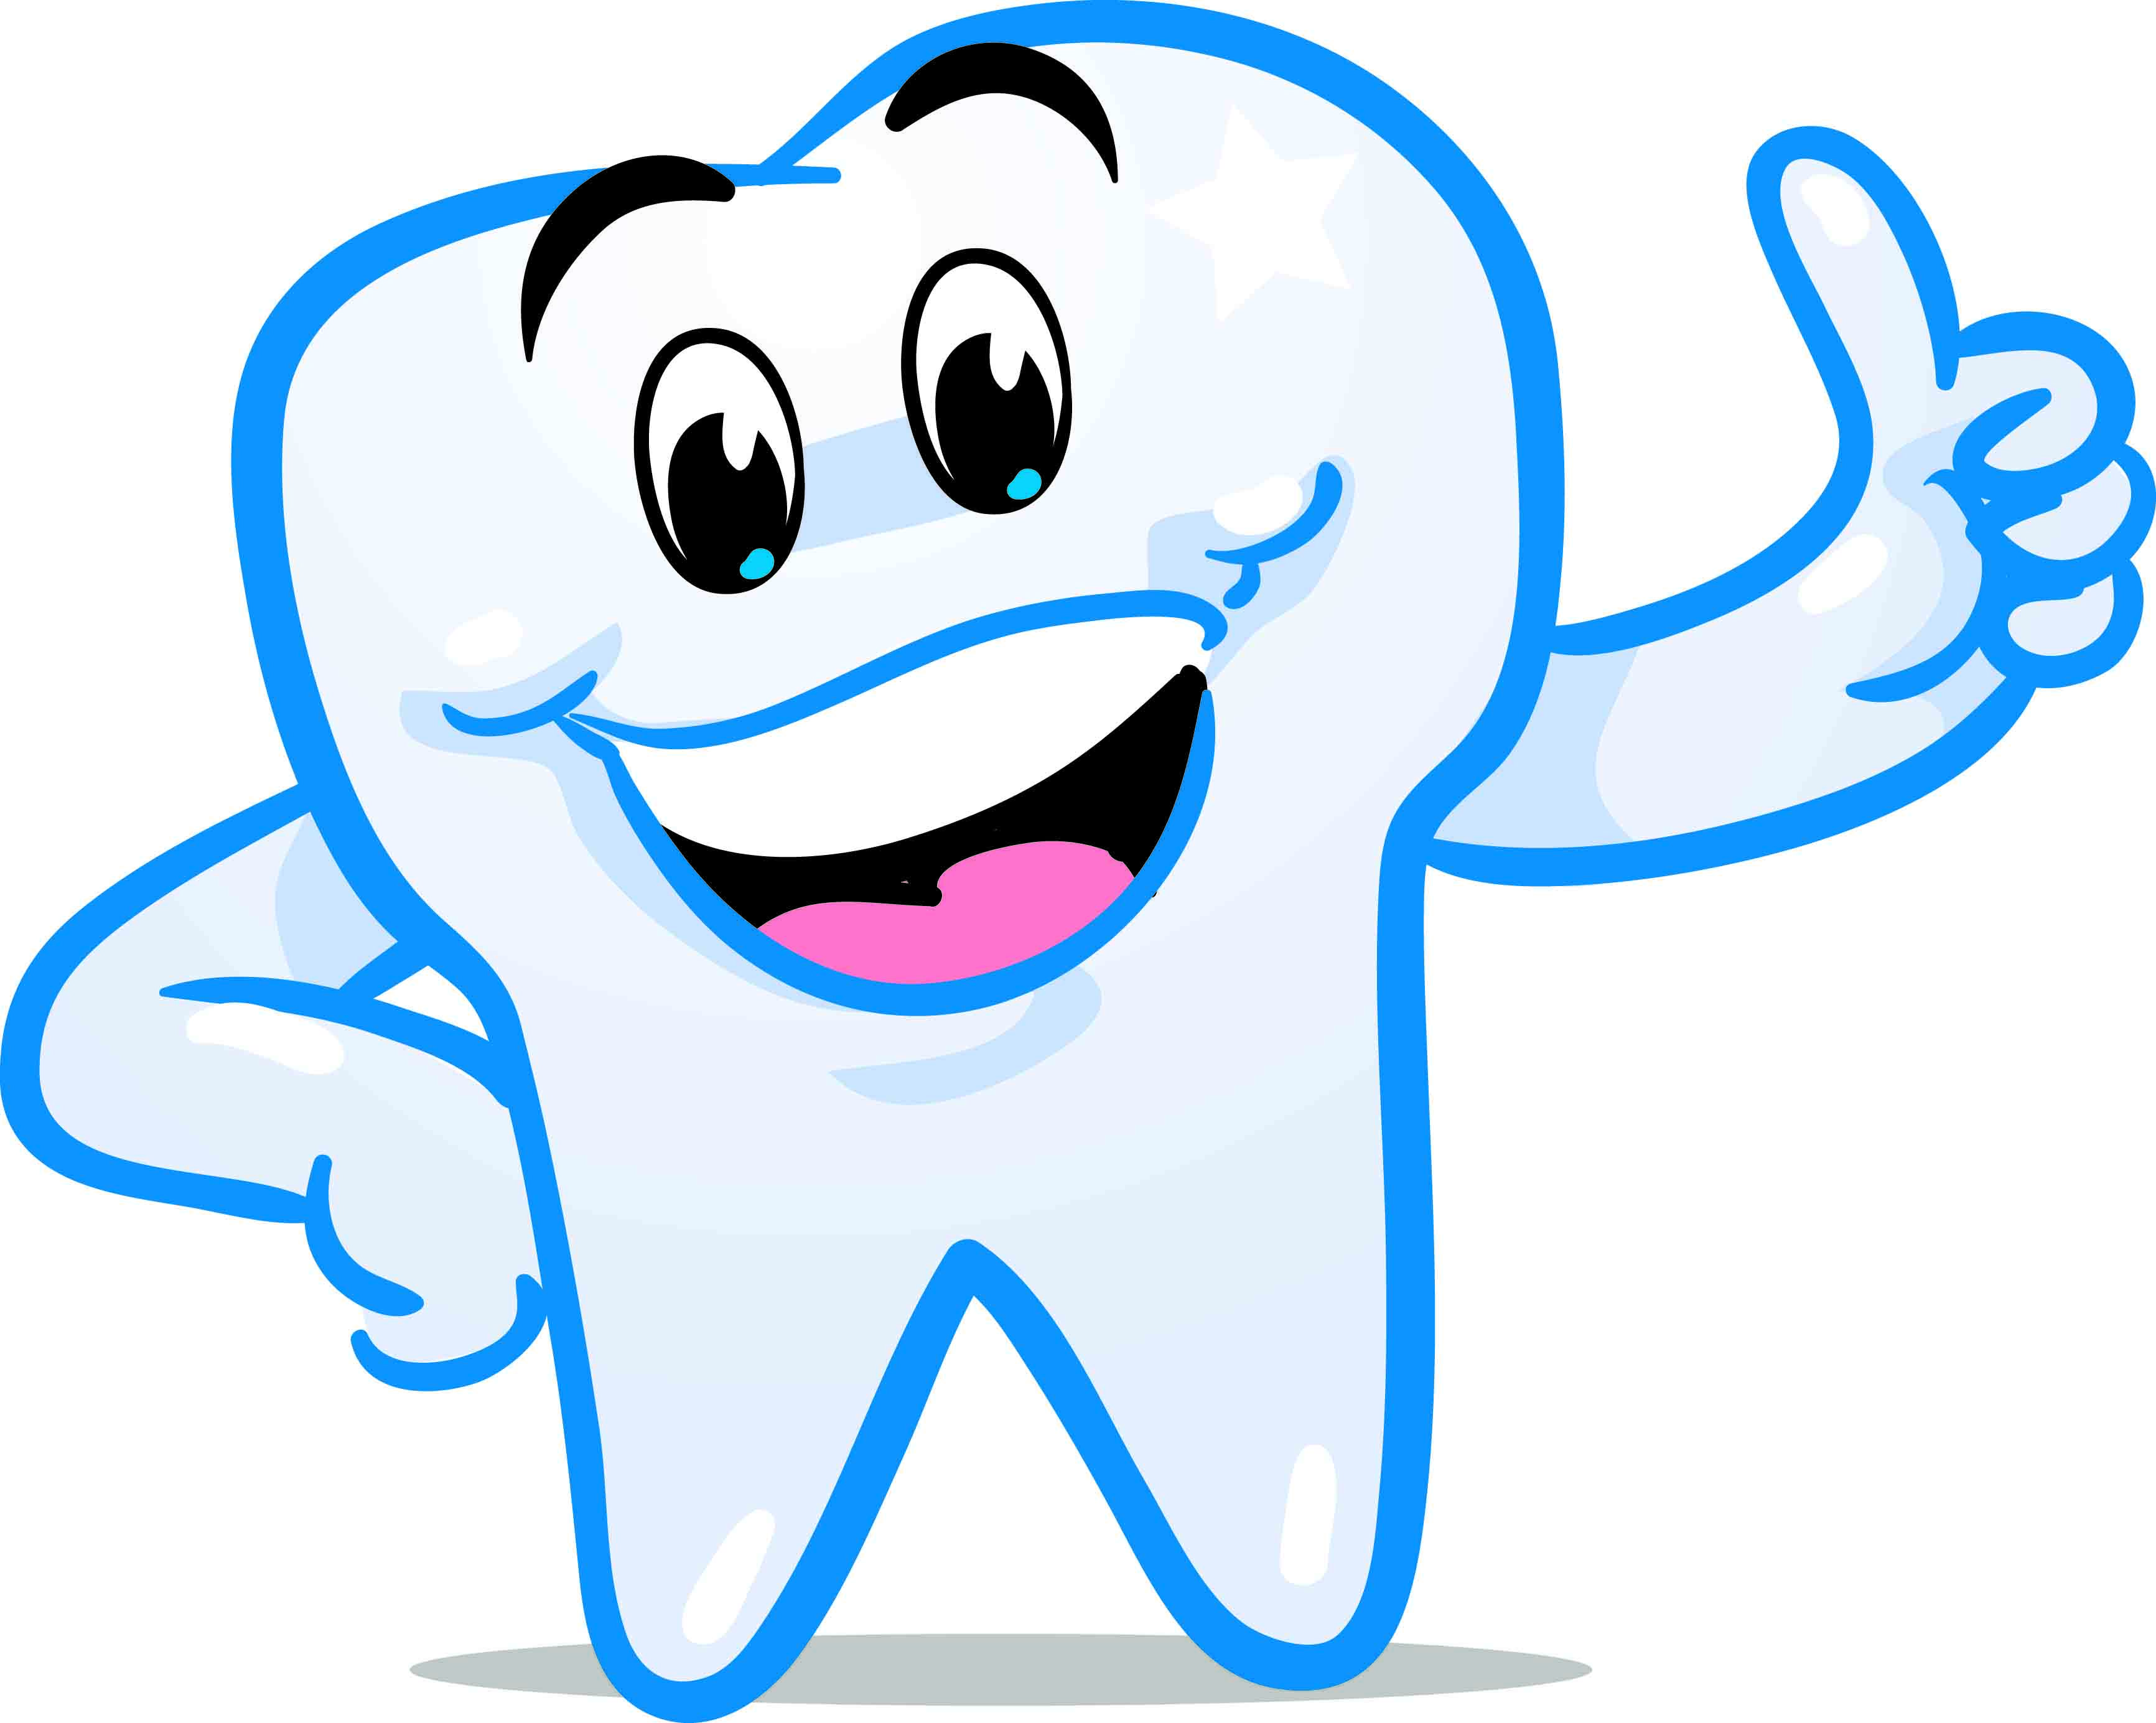 Tooth clipart smiley face. Dental smile party ideas